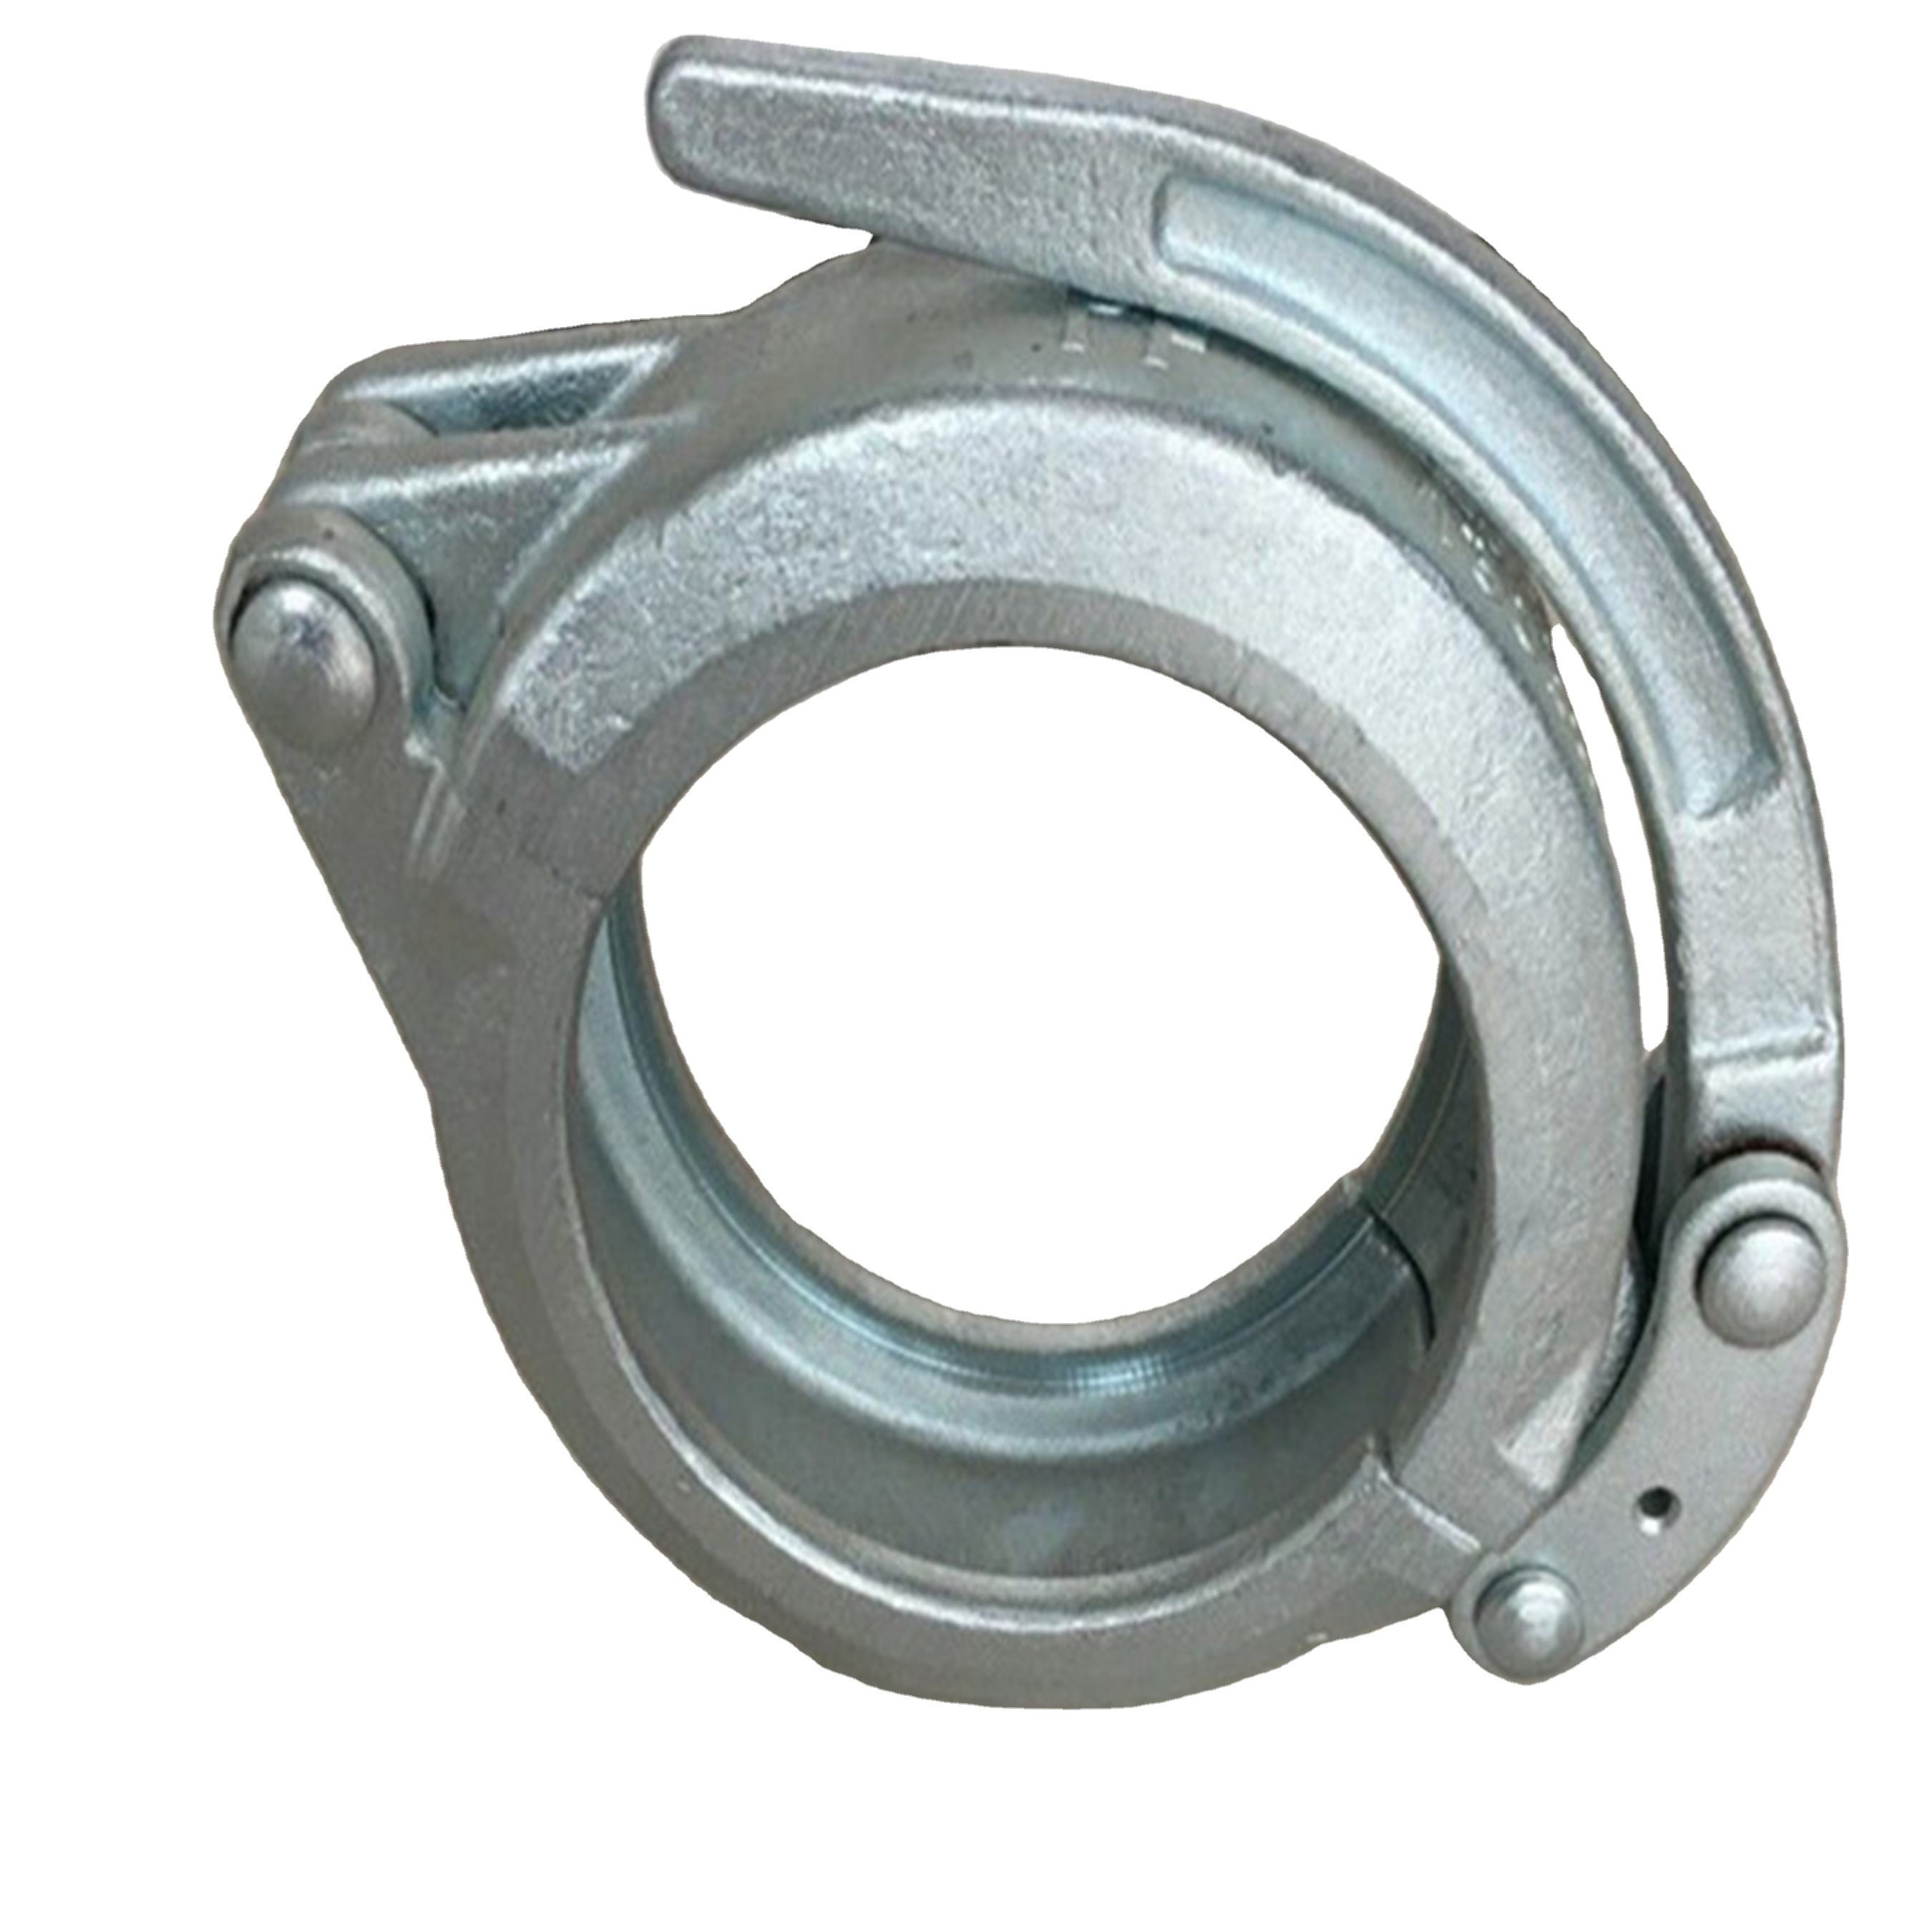 Hot sale concrete pump snap-joint coupling with gasket